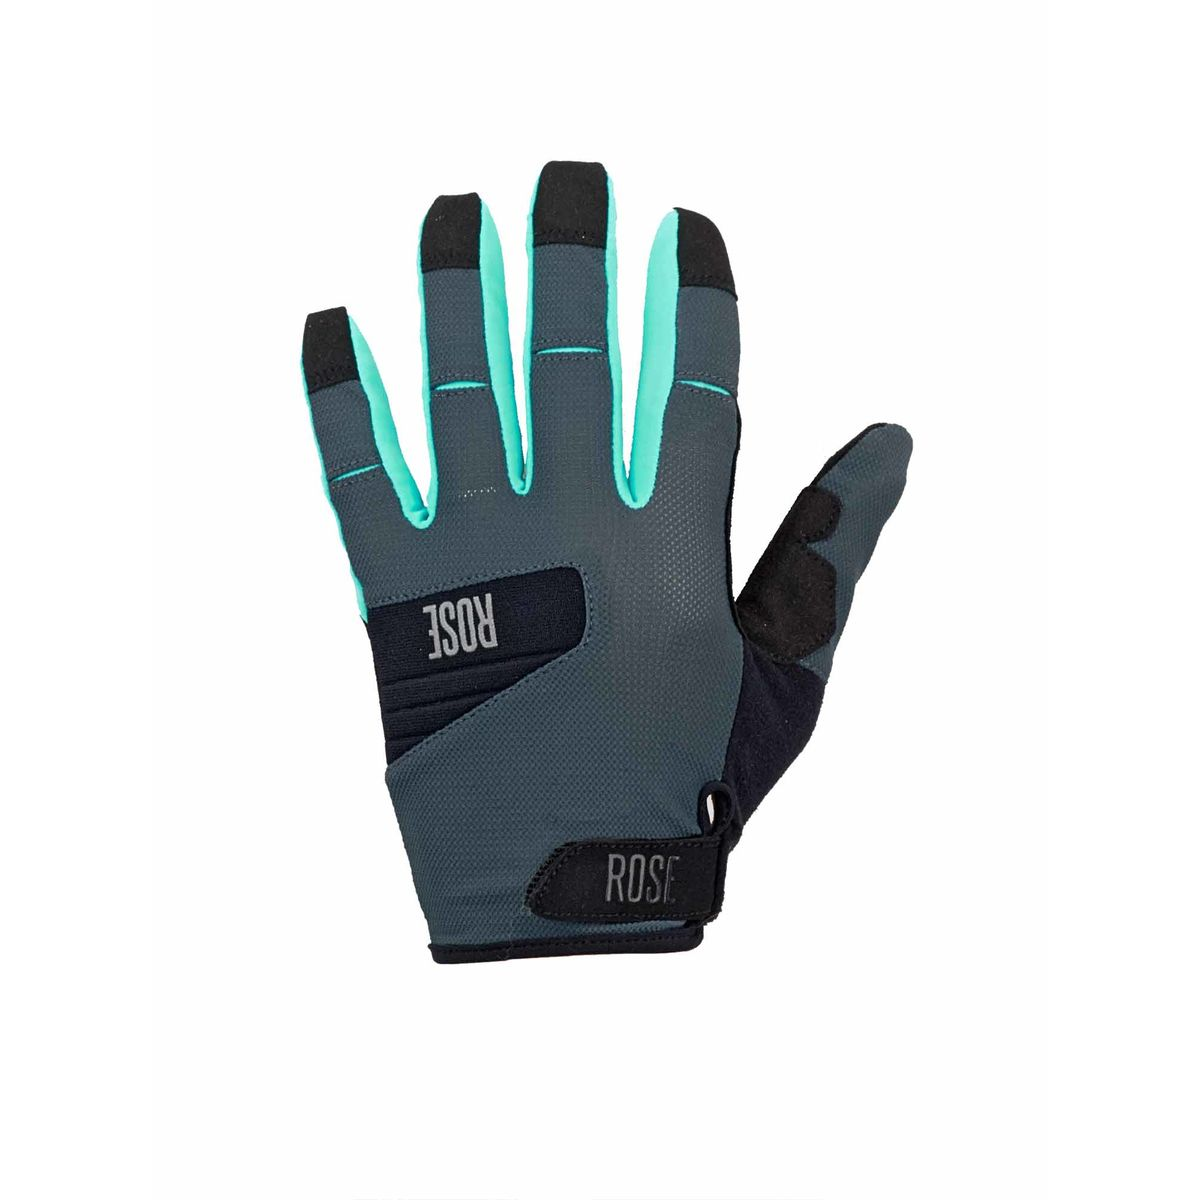 ROSE TITAN PURE cycling gloves | Handsker